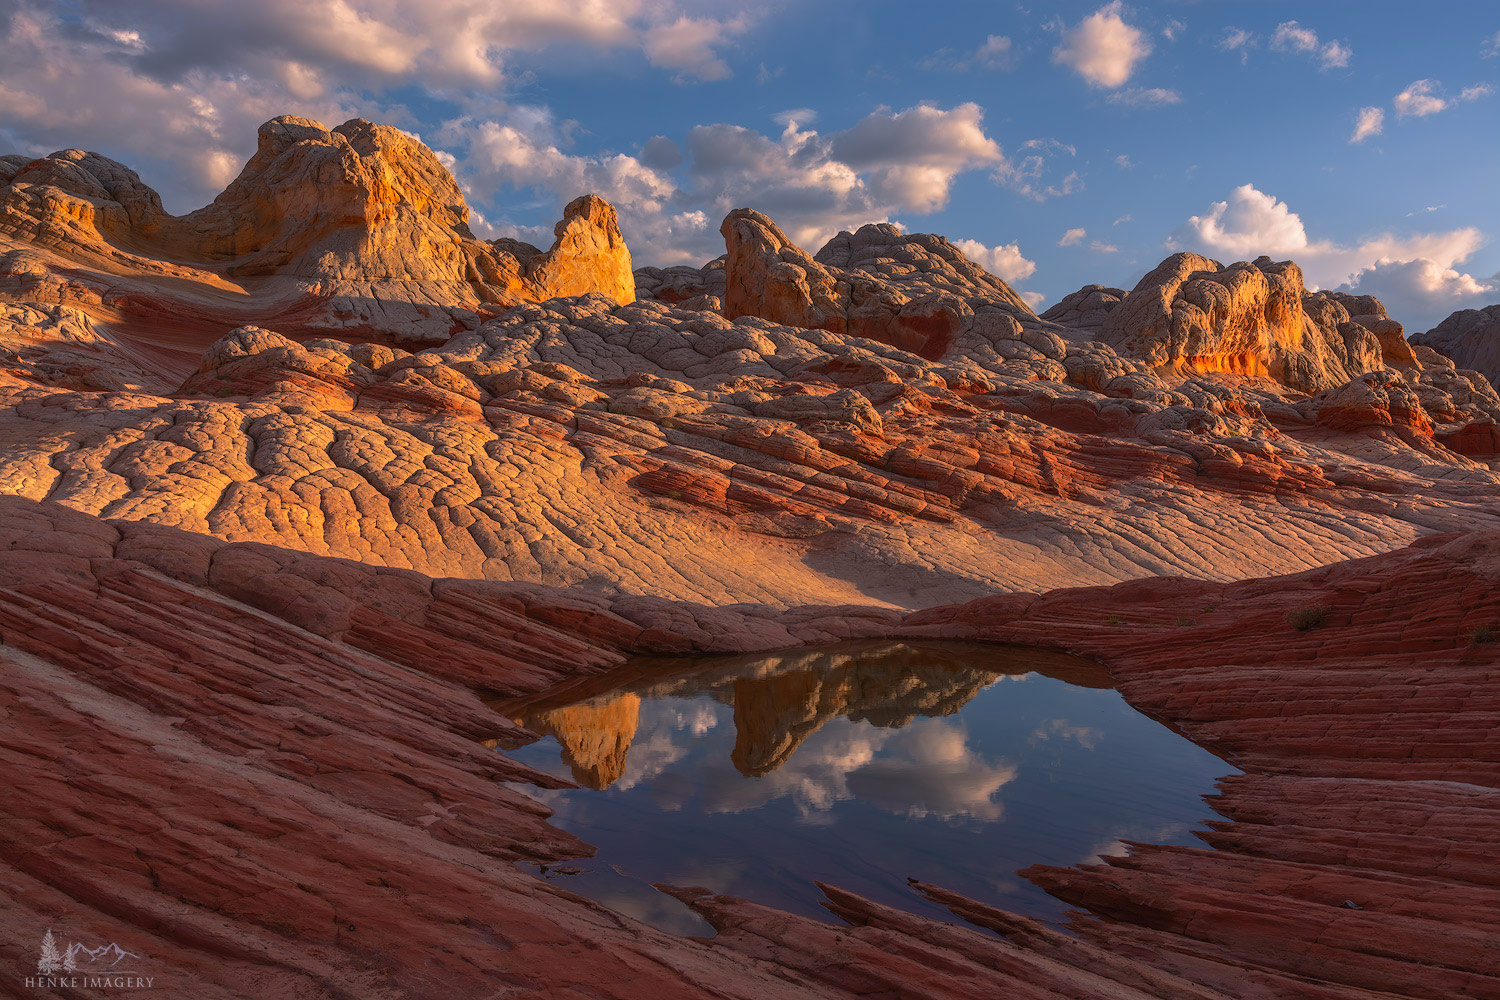 This photo was taken the Vermillion Cliffs Nat'l Monument in northern Arizona. I've posted several images over the...